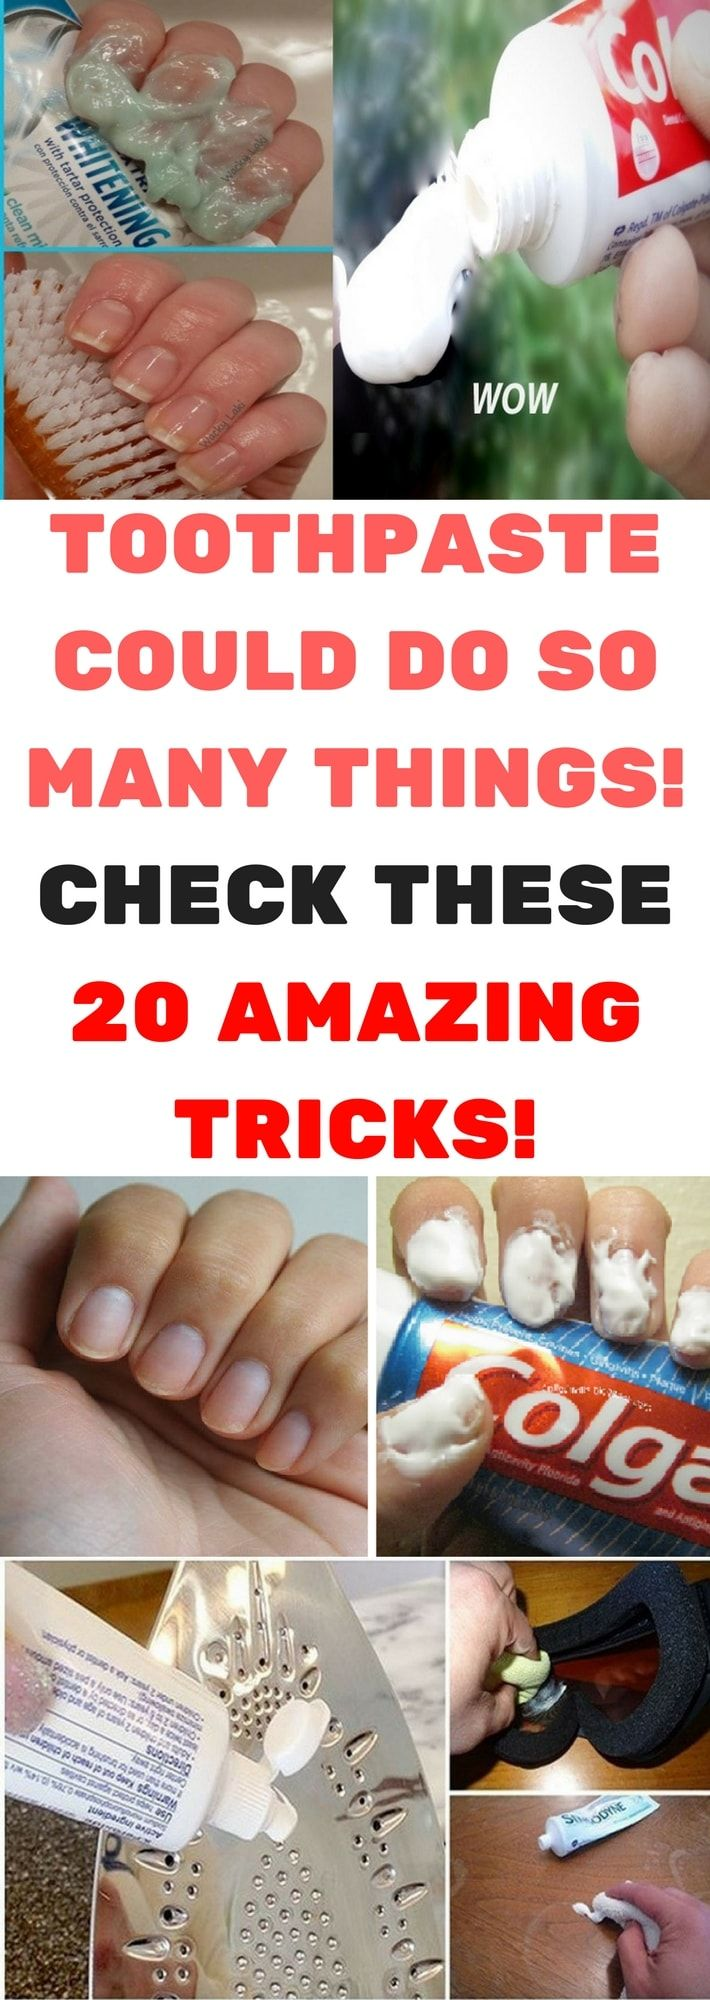 I NEVER IMAGINED THAT TOOTHPASTE COULD DO SO MANY THINGS. CHECK THESE 20 AMAZING TRICKS!!!!